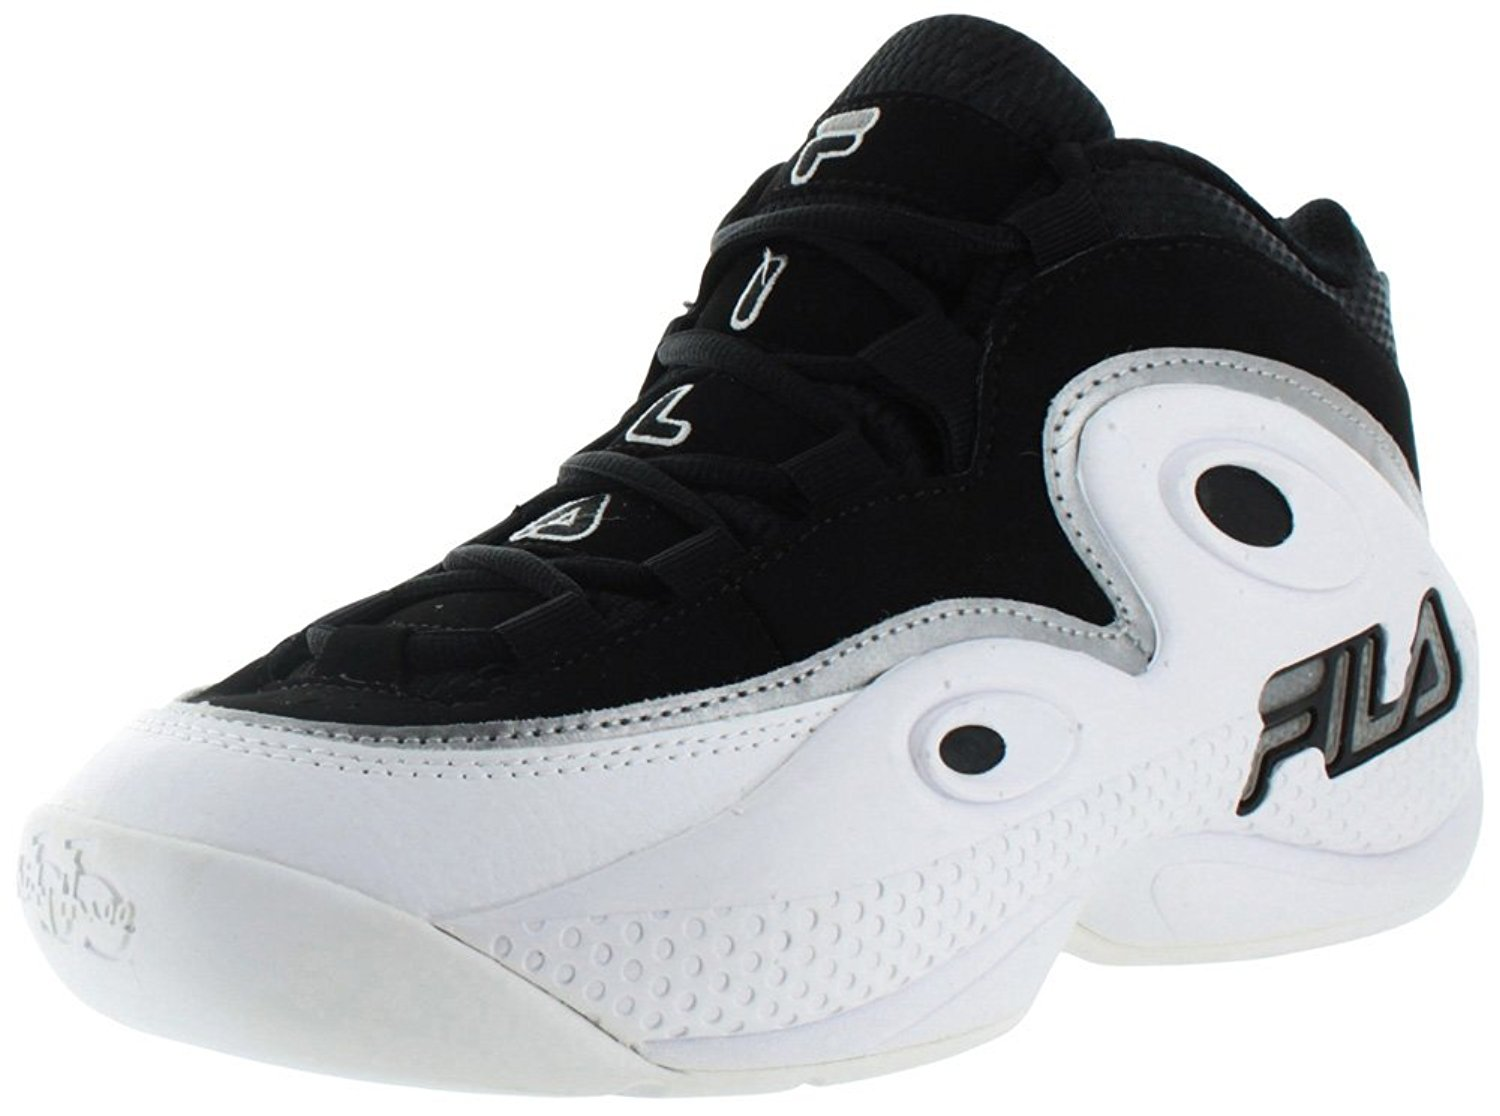 Get Quotations · Fila Grant Hill 97 Men s Retro Basketball Sneakers Shoes 7e8538a3e0c7b